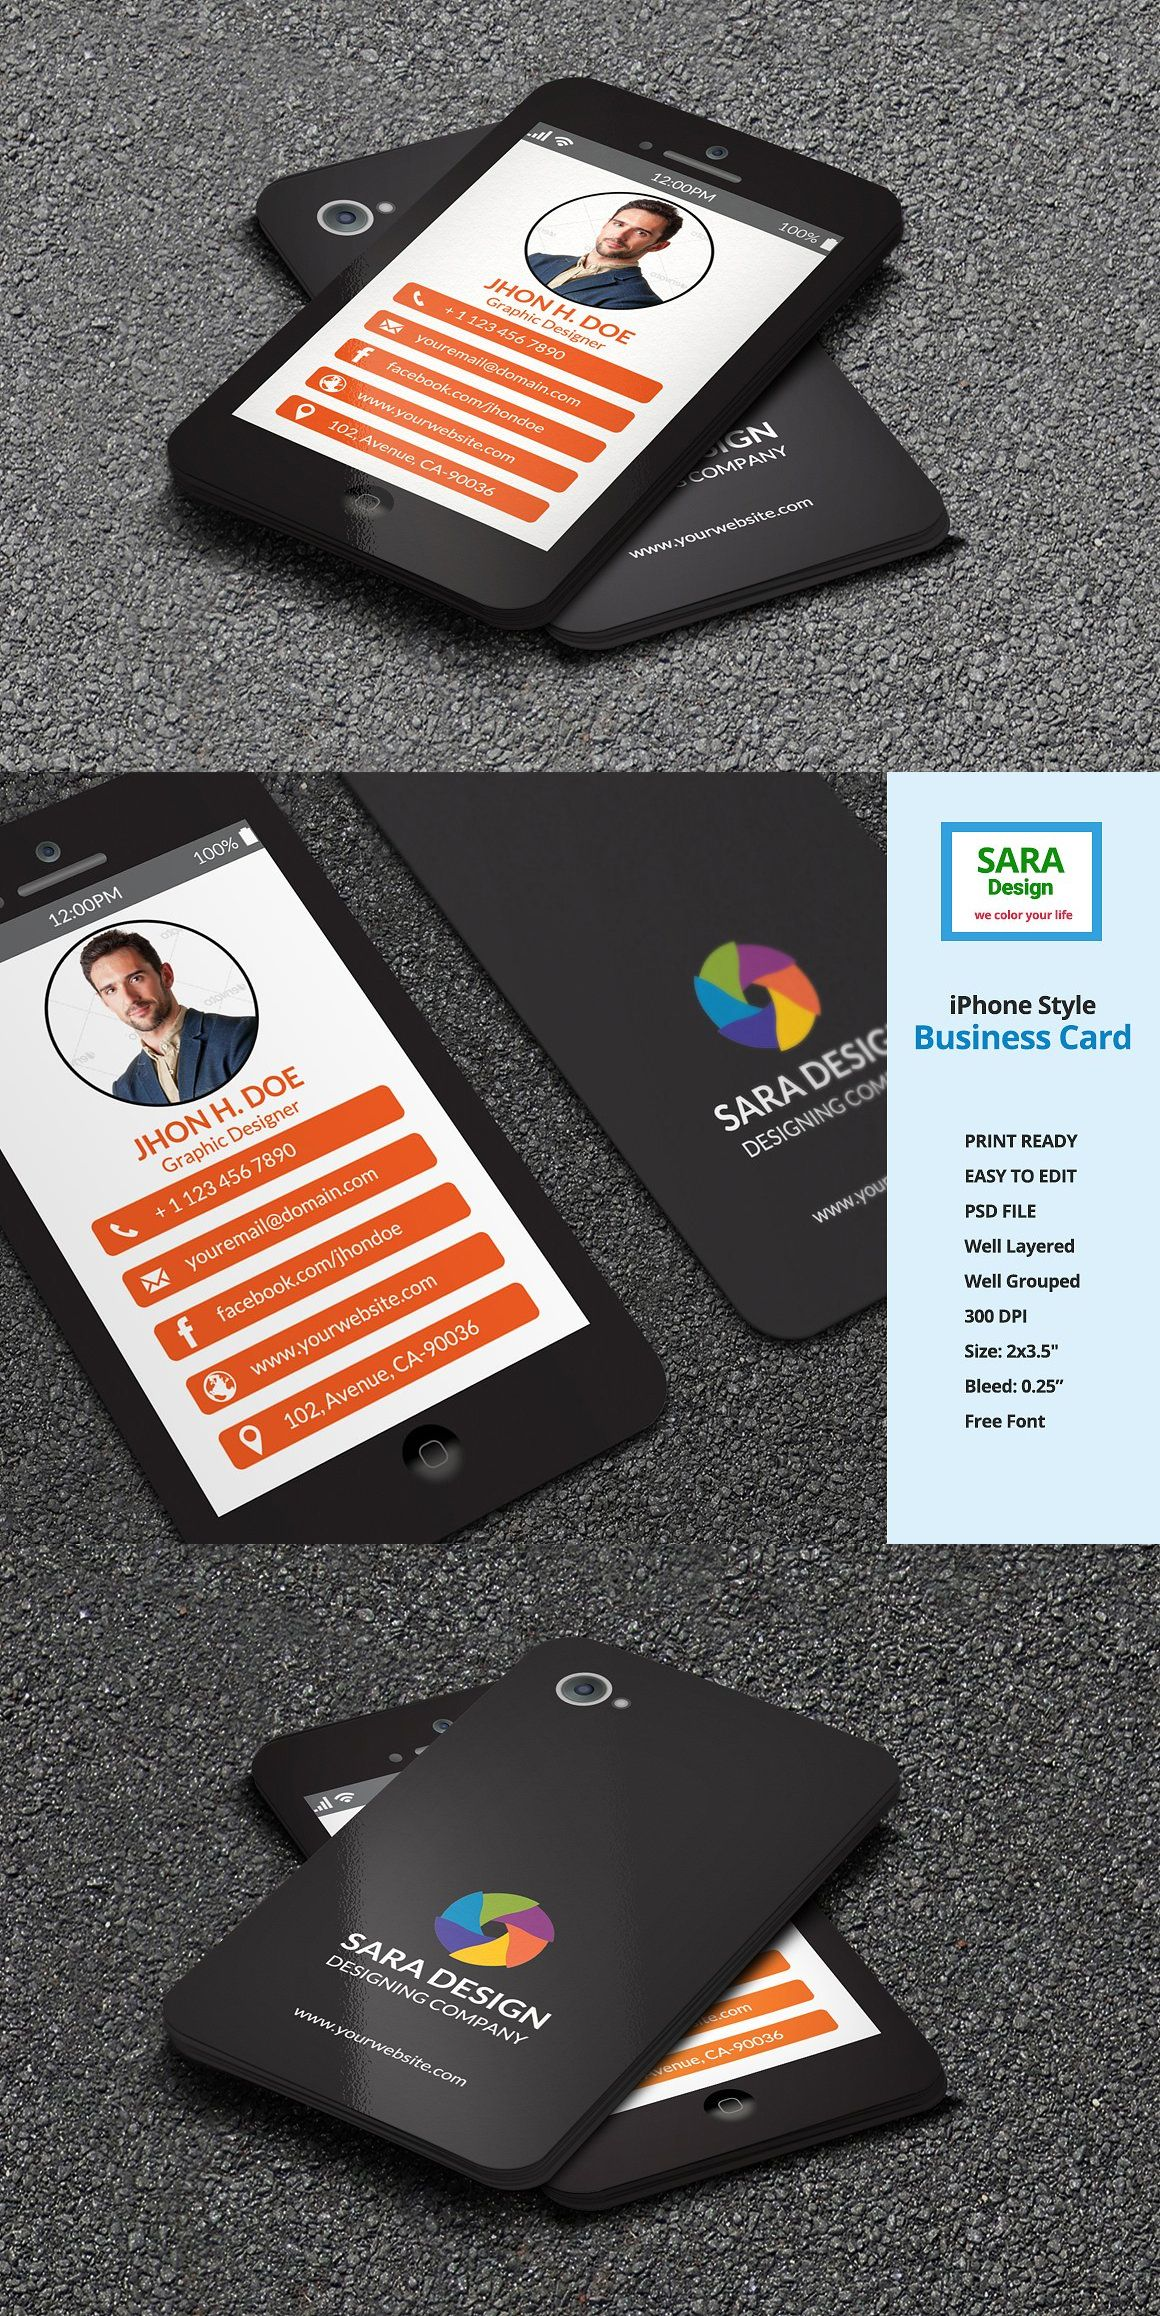 Iphone stylish business card templates psd business card templates iphone stylish business card templates psd reheart Image collections